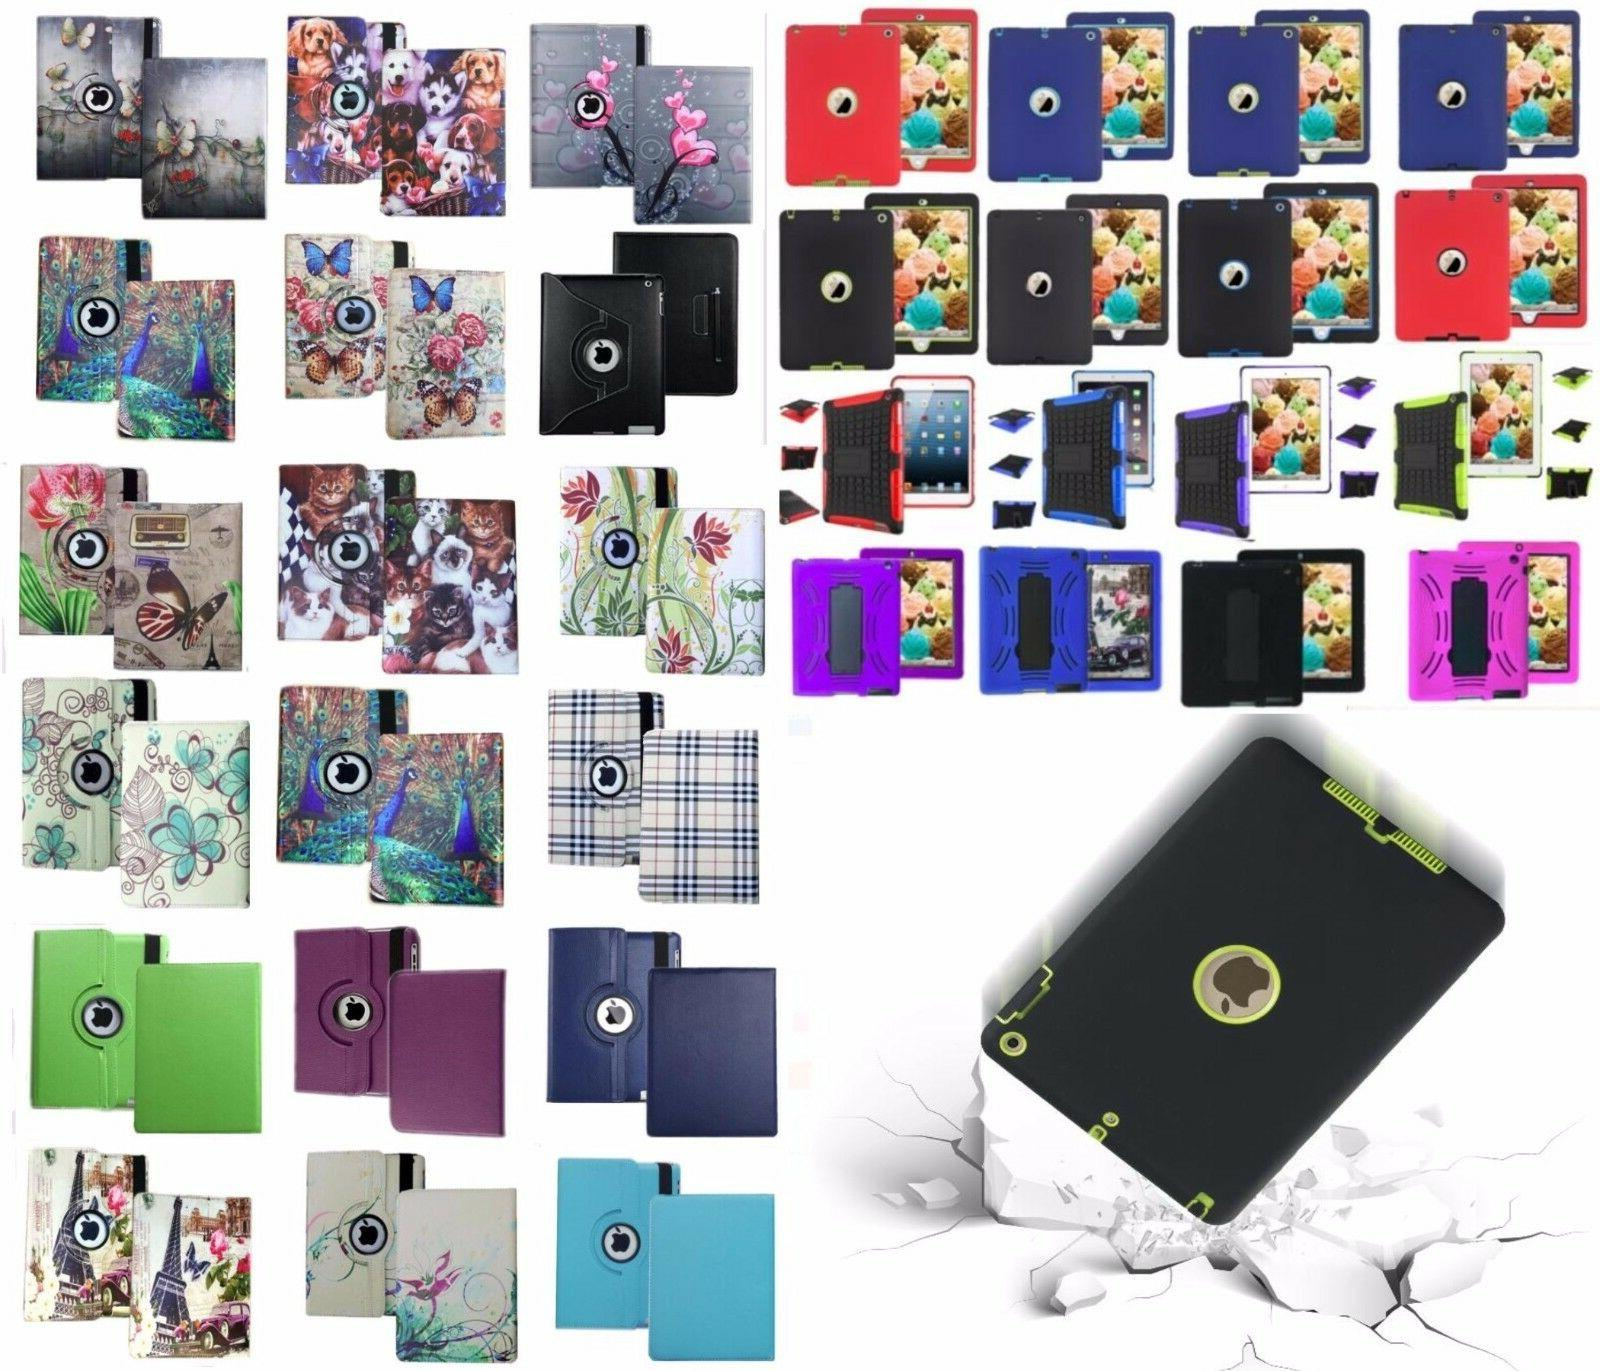 Ipad Case for iPad 2nd 3rd and 4th Generation model A1395  A